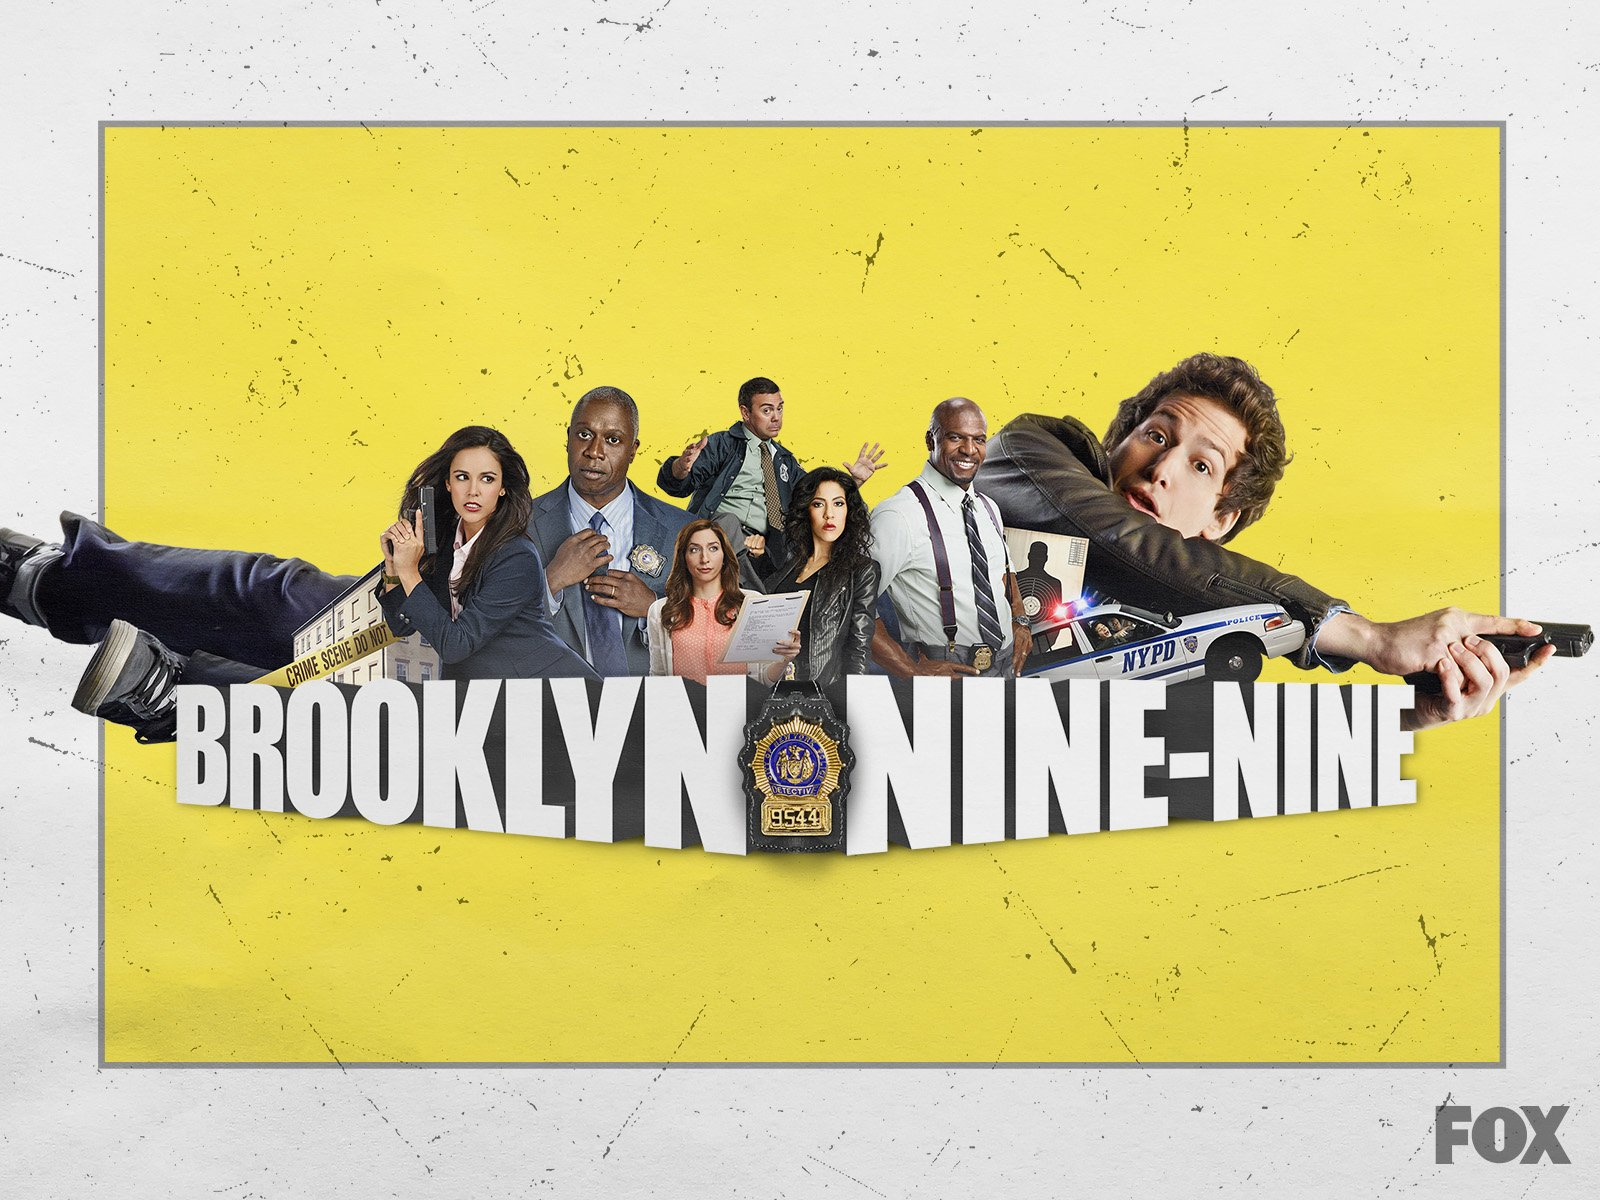 Brooklyn Nine Nine Season 1 Download Kickass - georgianame's